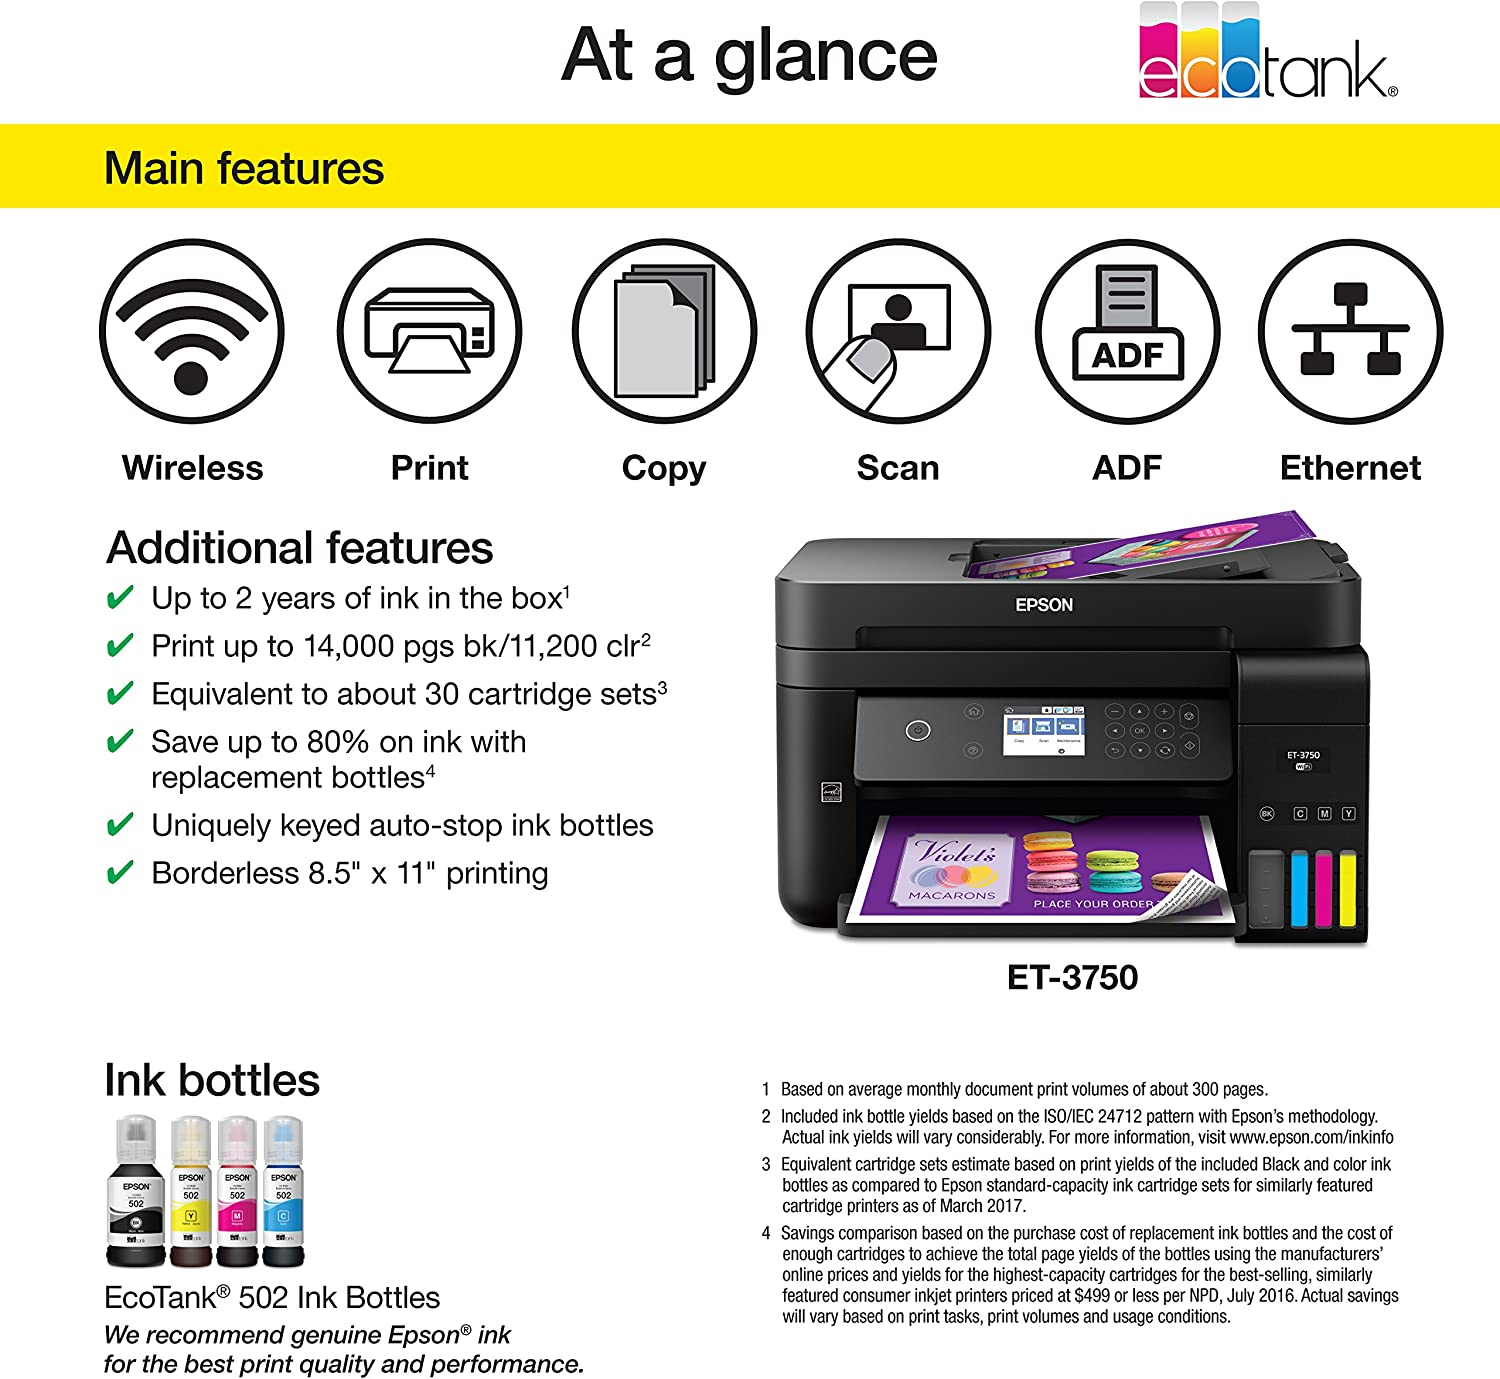 Amazon.com: Epson Workforce ET-3750 EcoTank Impresora ...